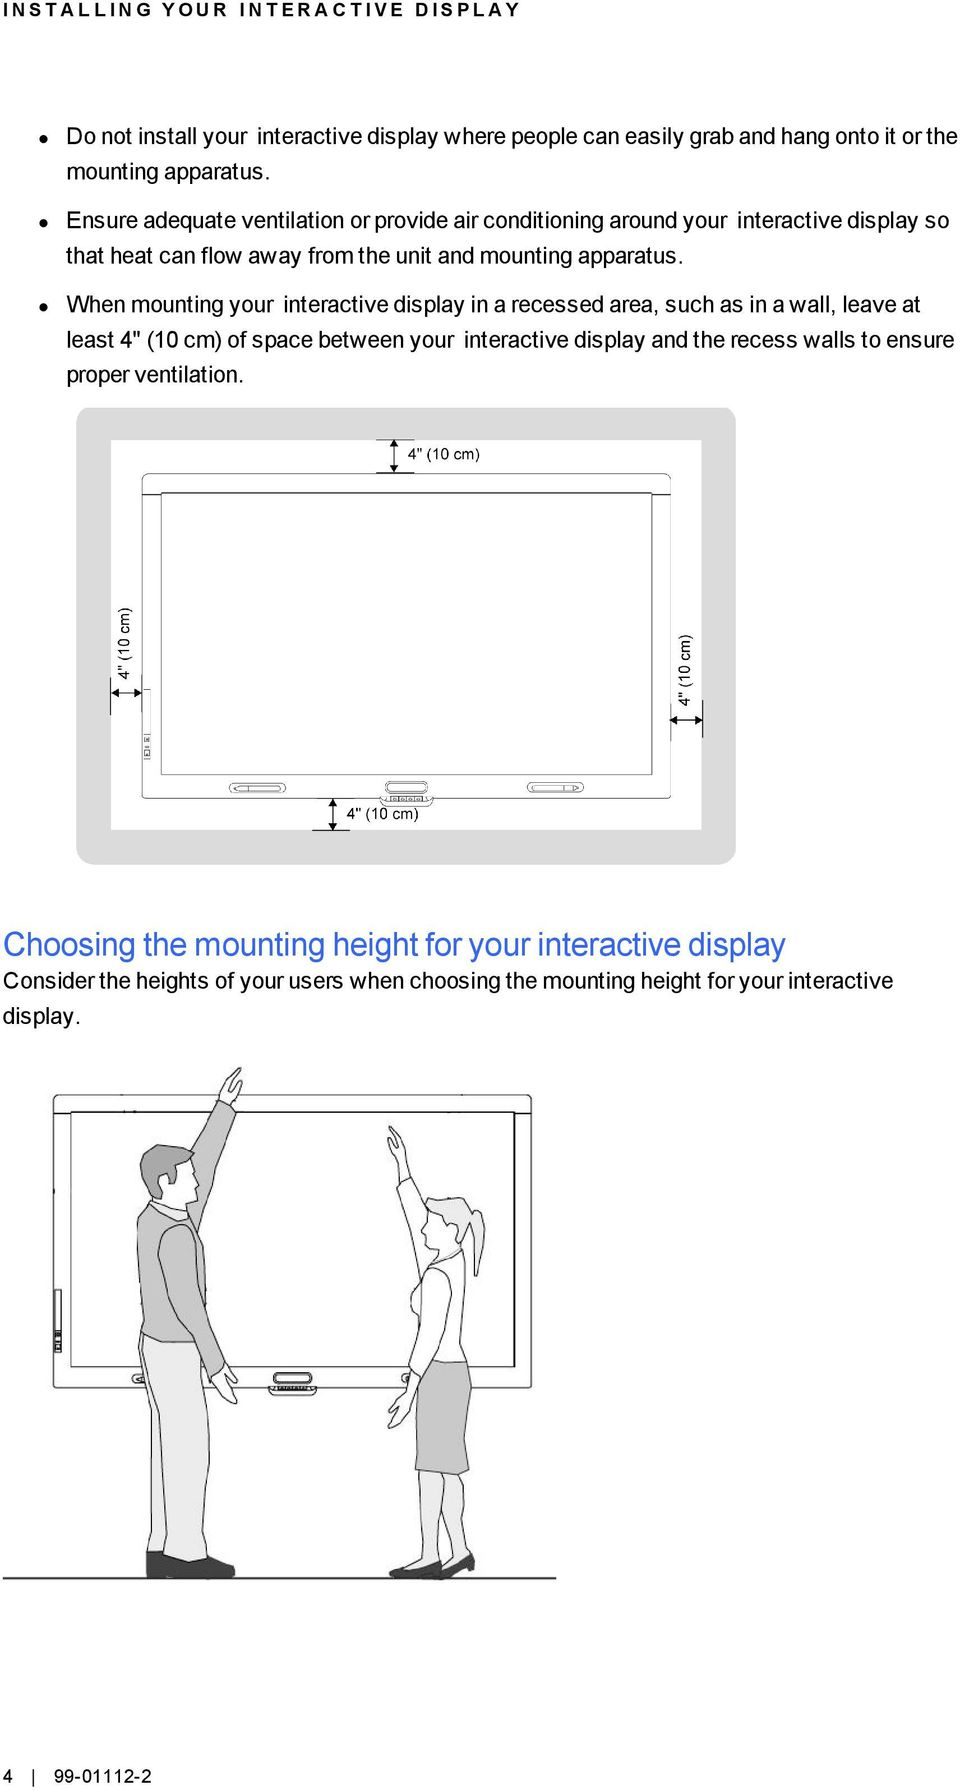 "When mounting your interactive display in a recessed area, such as in a wall, leave at least 4"" (10 cm) of space between your interactive display and the recess walls to"